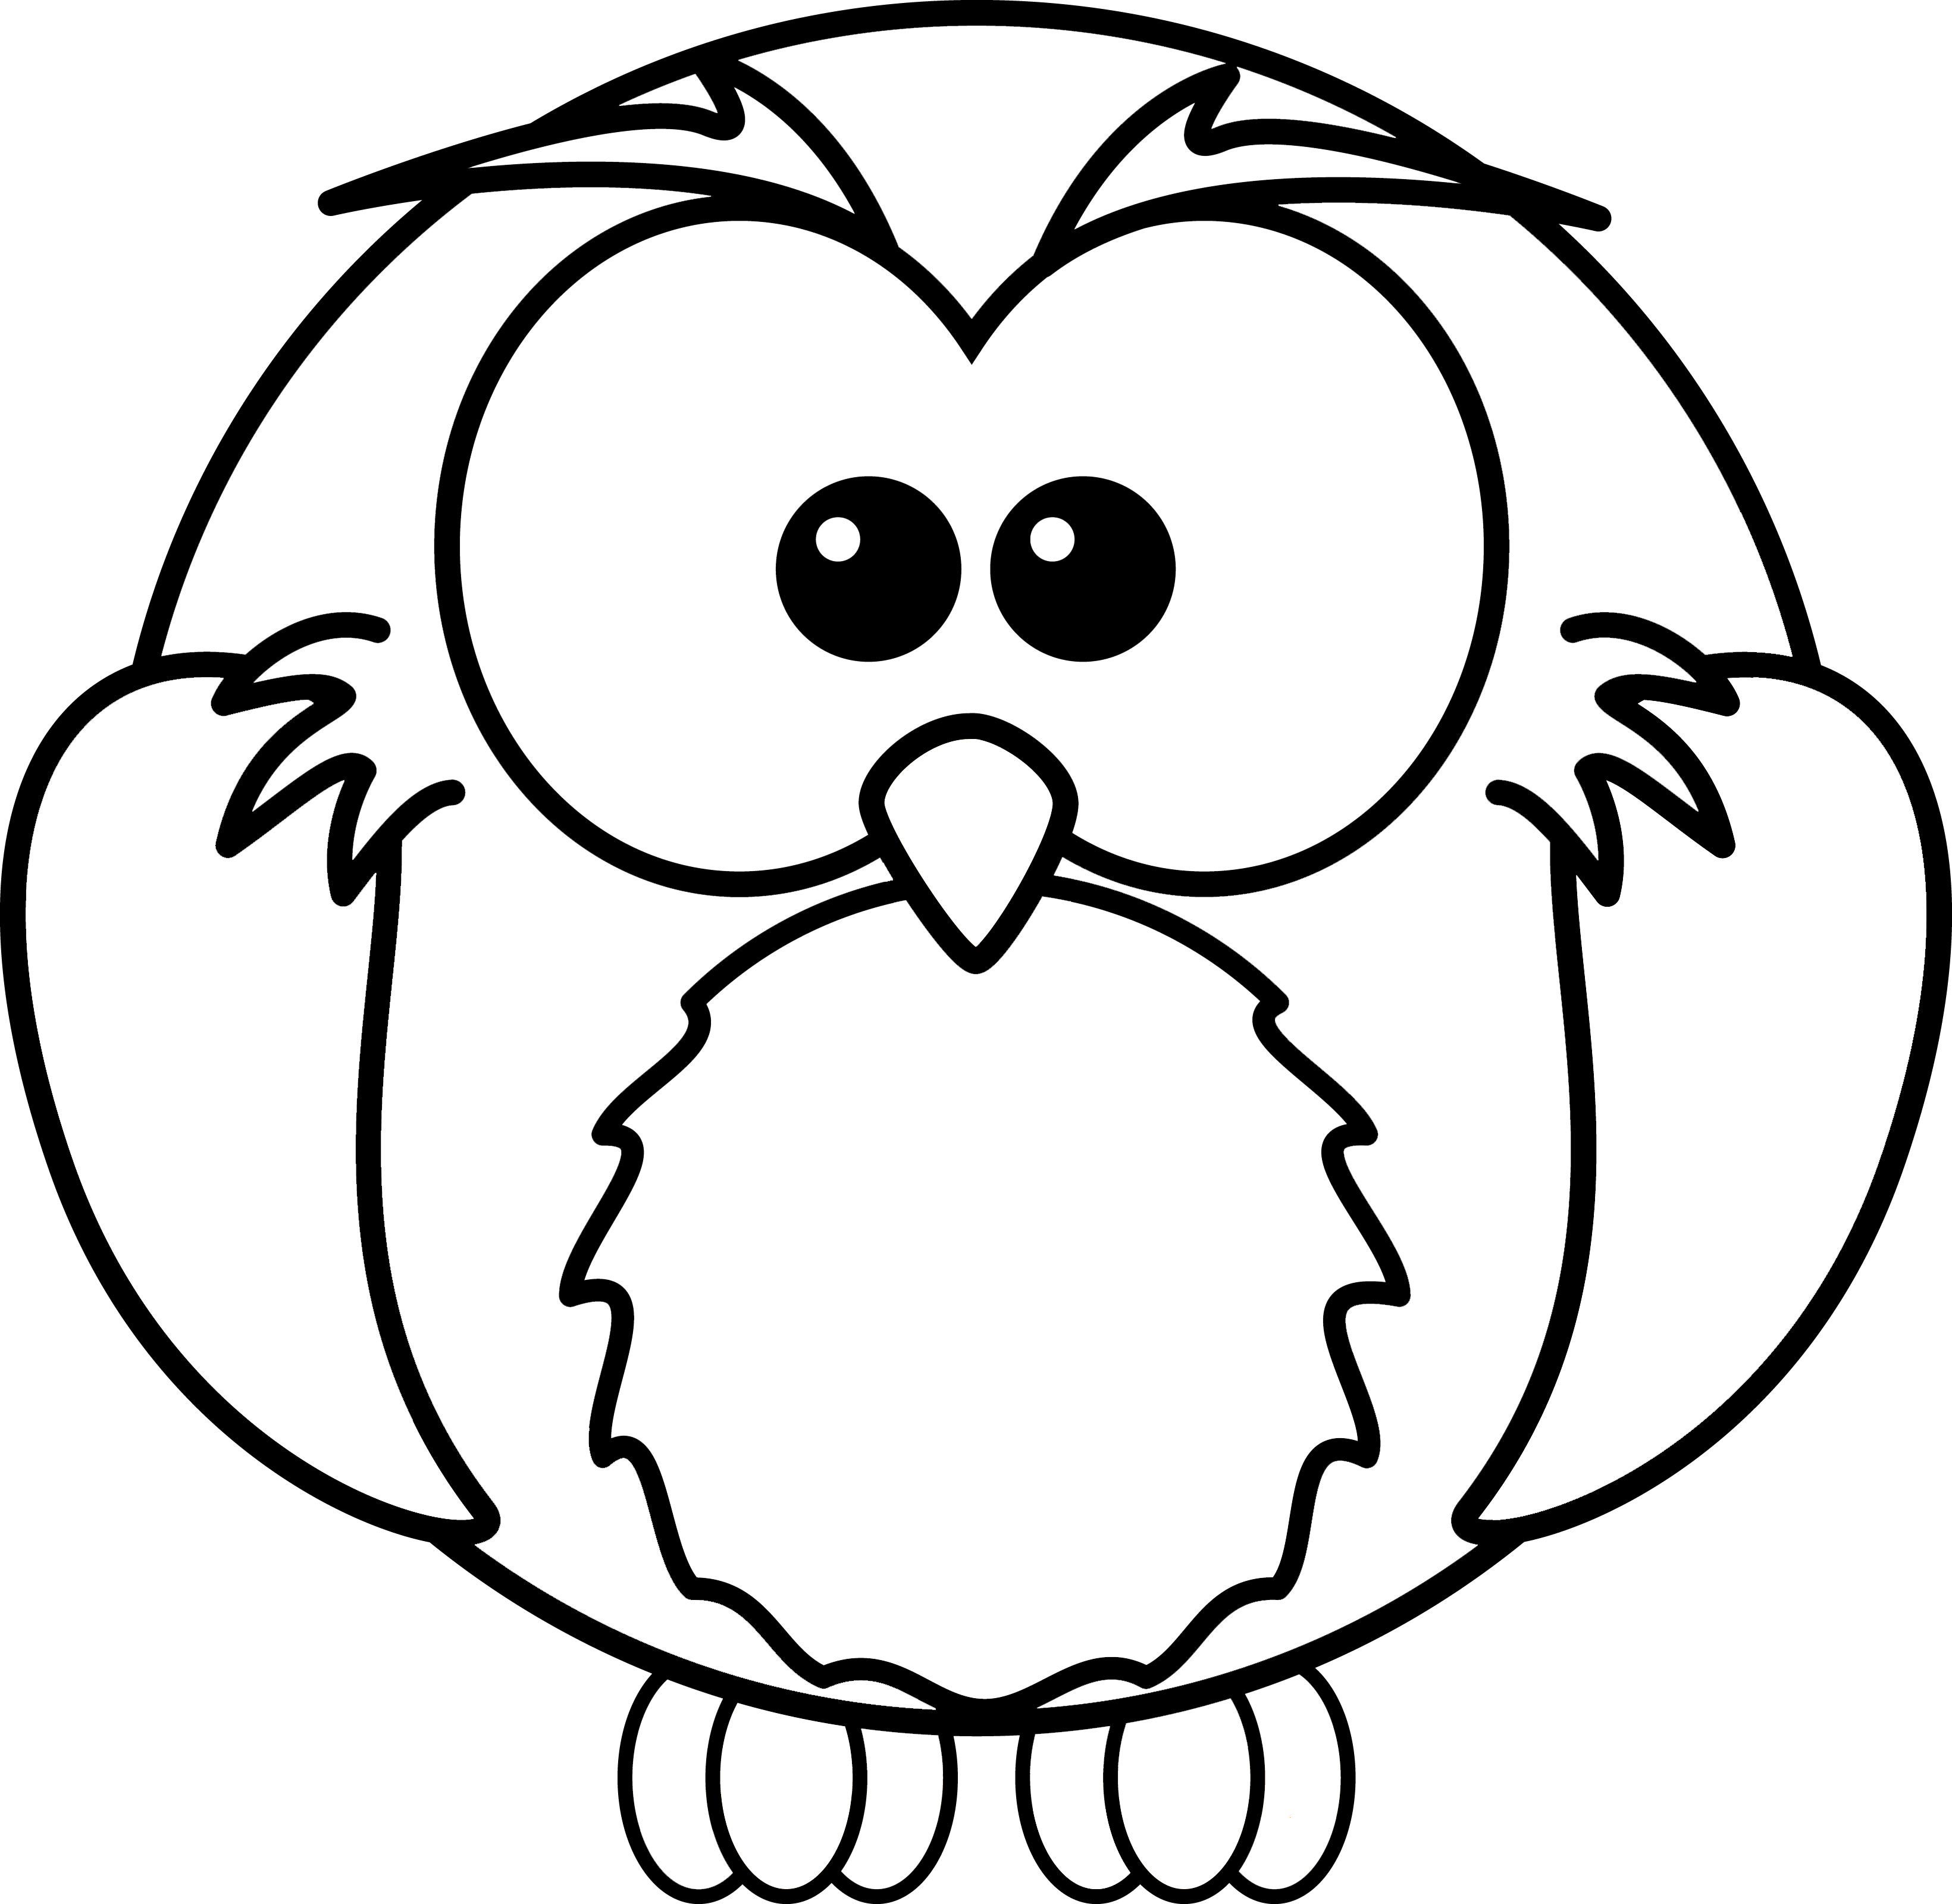 cartoon clipart free cartoon owl coloring page - Free Owl Coloring Pages